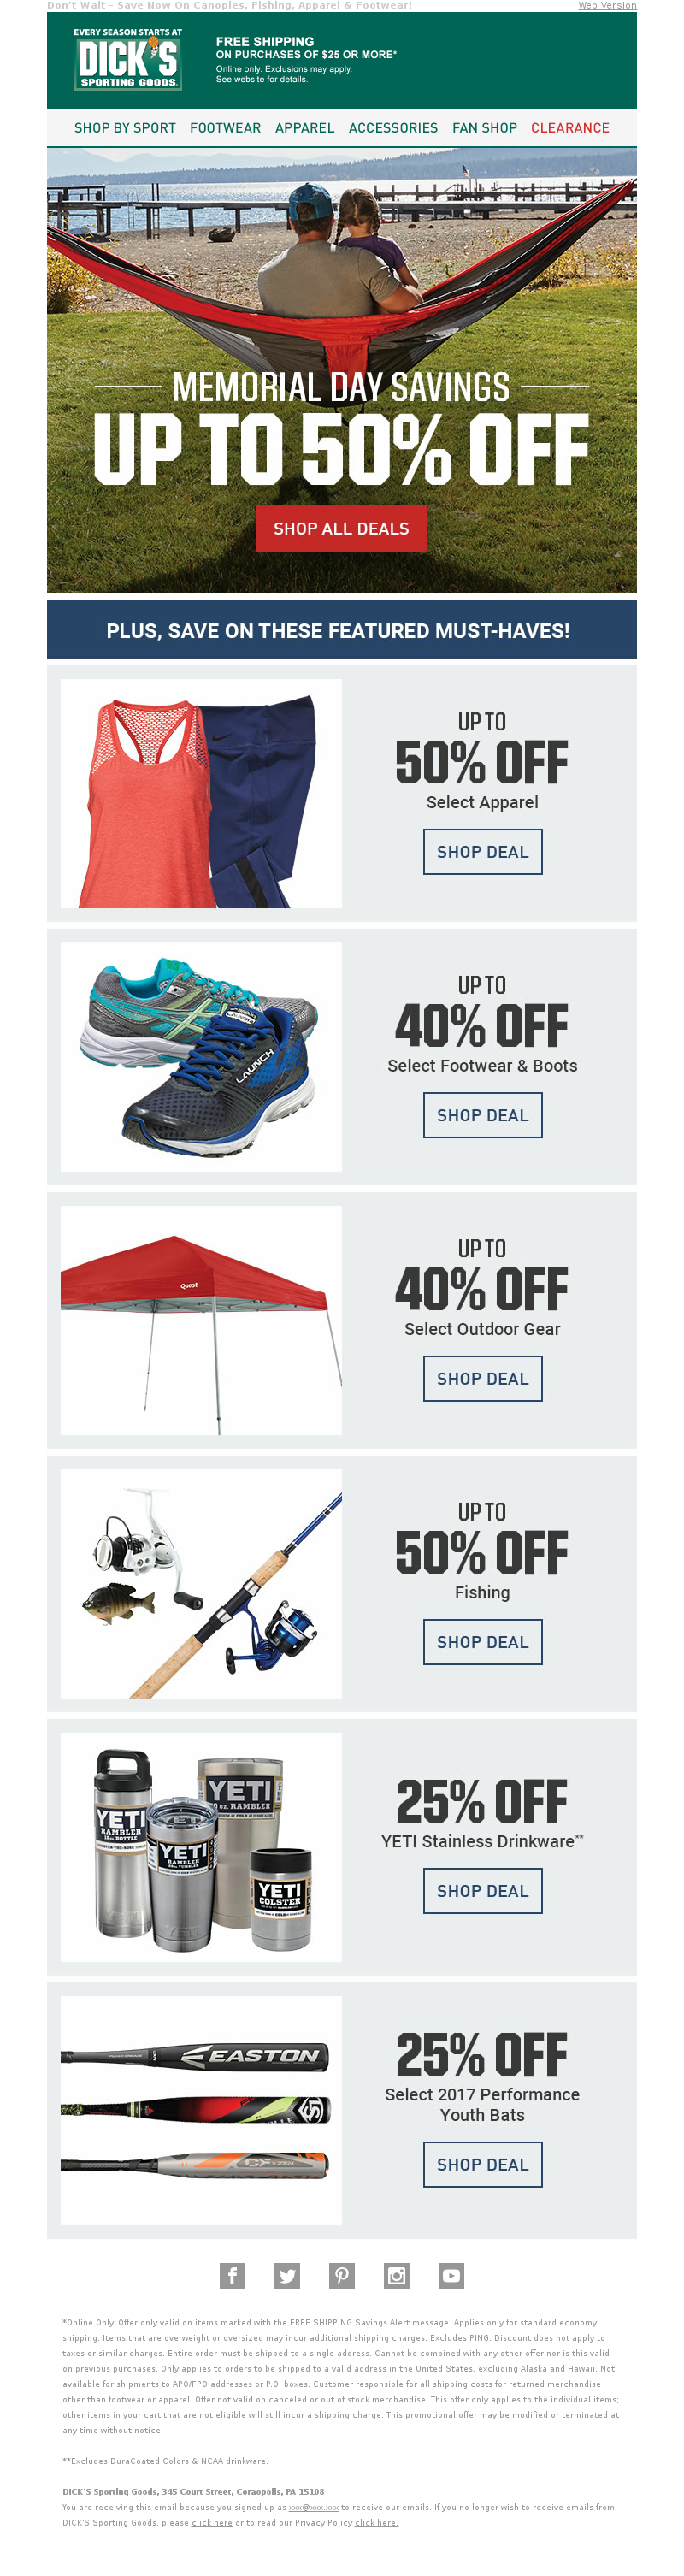 Don't Wait – Save Now On Canopies, Fishing, Apparel & Footwear! Web Version